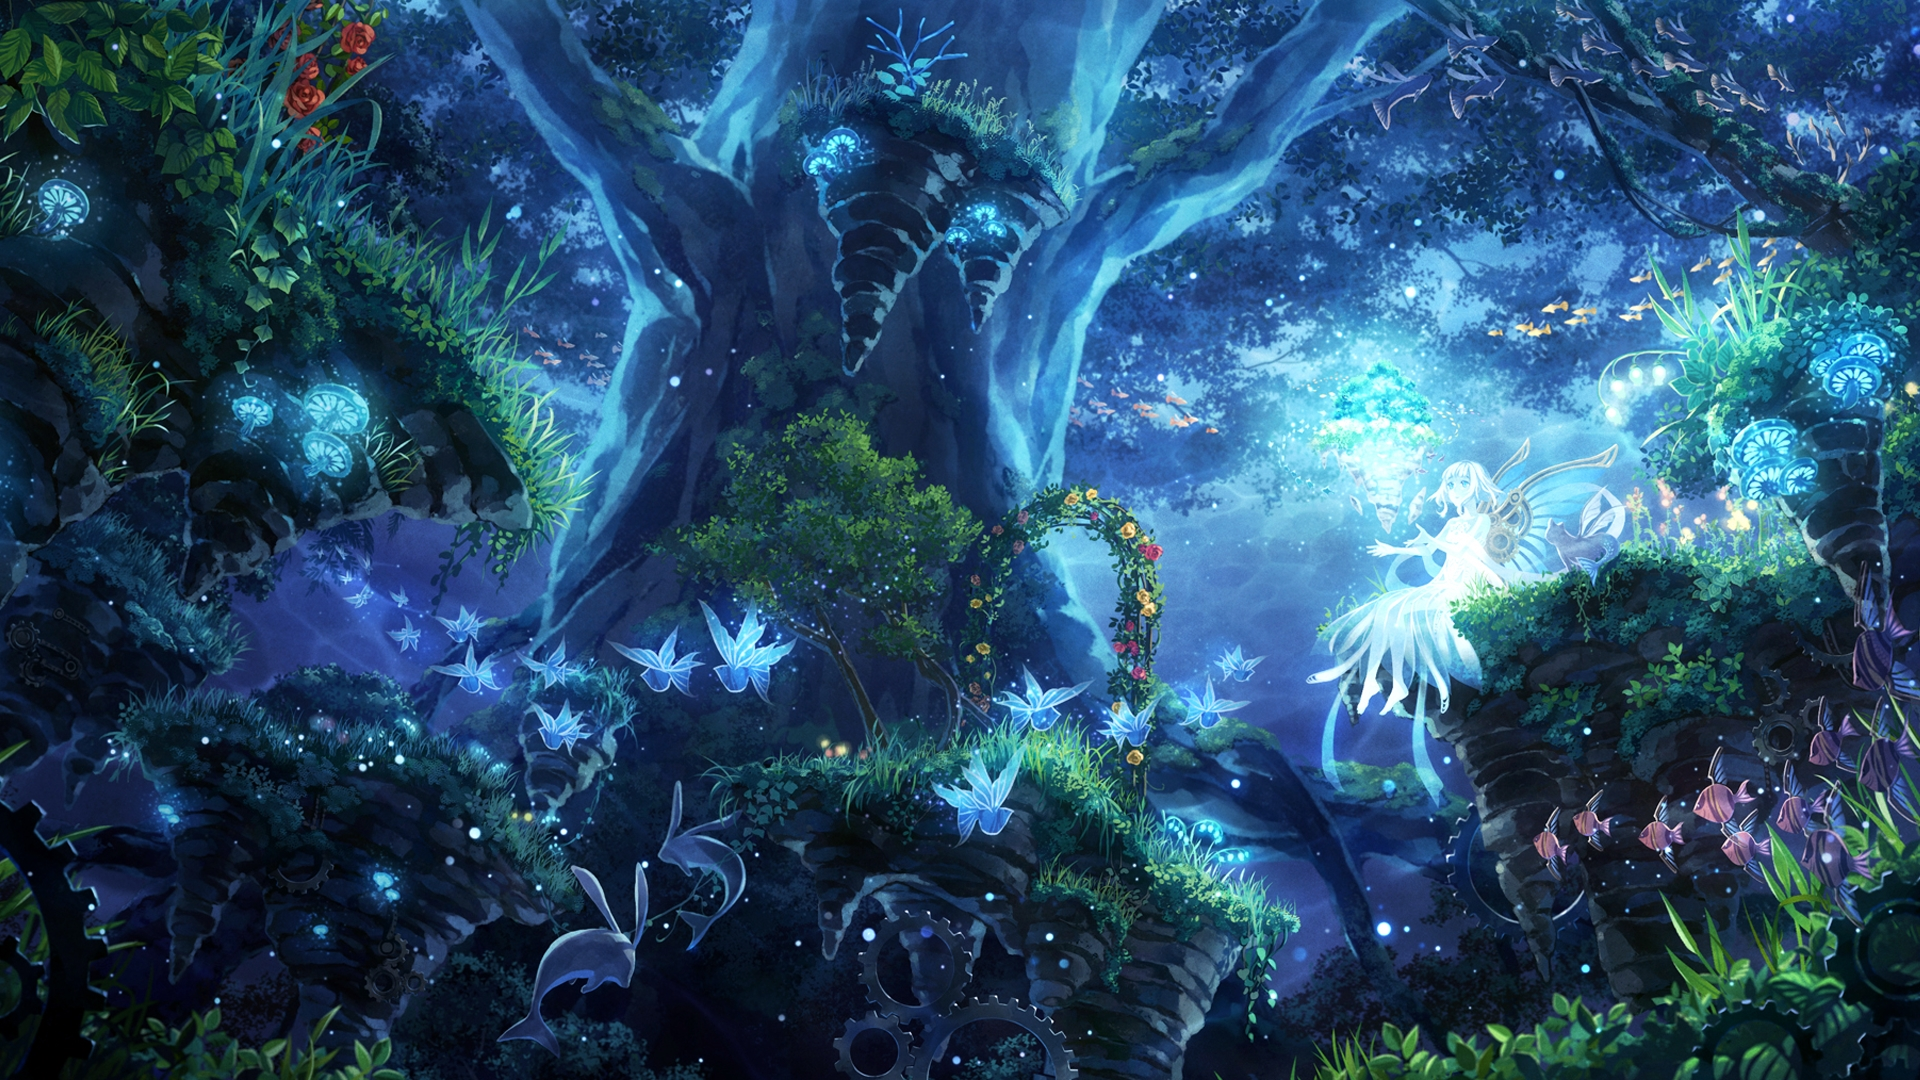 Anime Forest wallpaper image